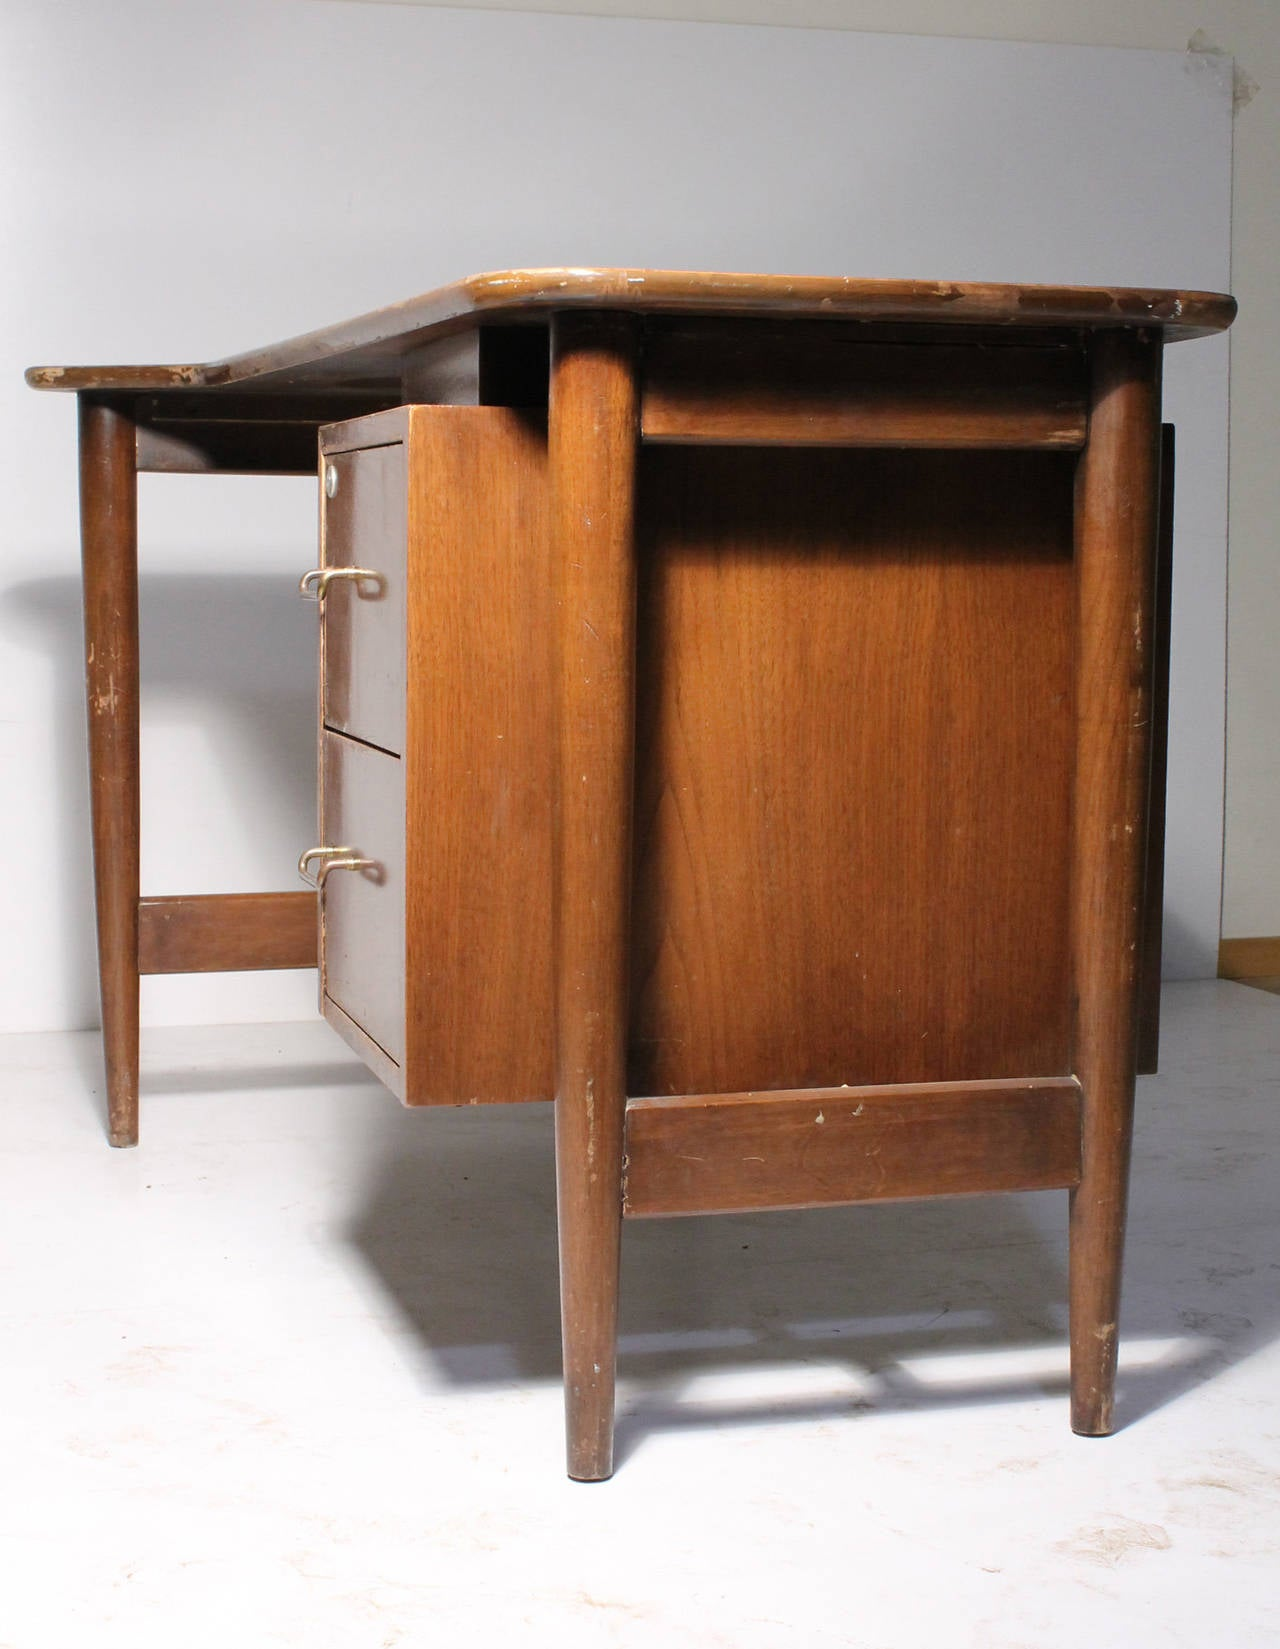 American of Martinsville Desk by Merton Gershun Desk from the